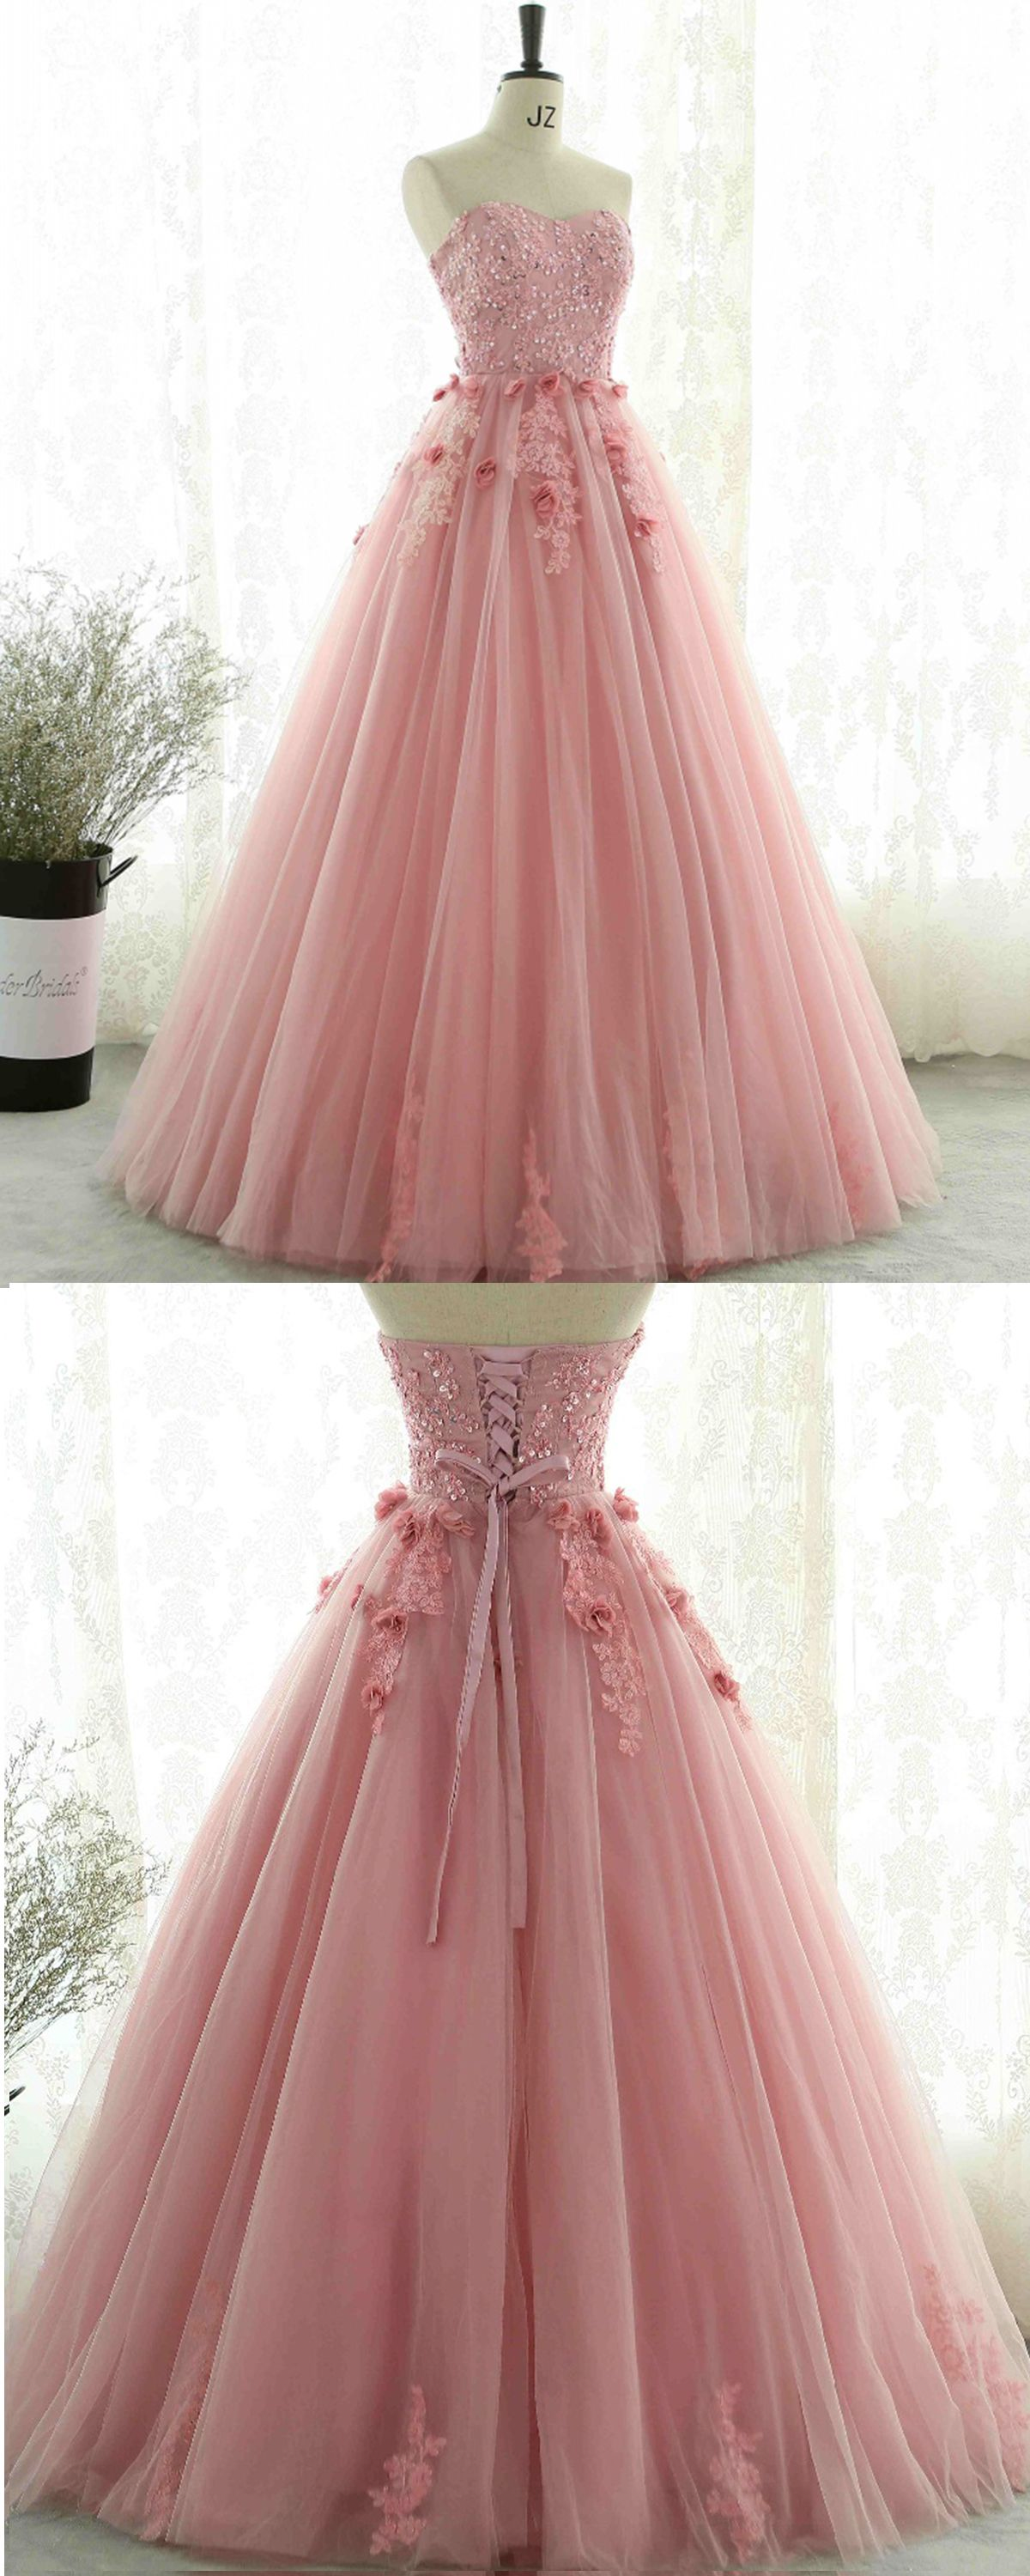 Pin de sayba Aslam en Prom dress | Pinterest | Vestiditos, 15 años y ...